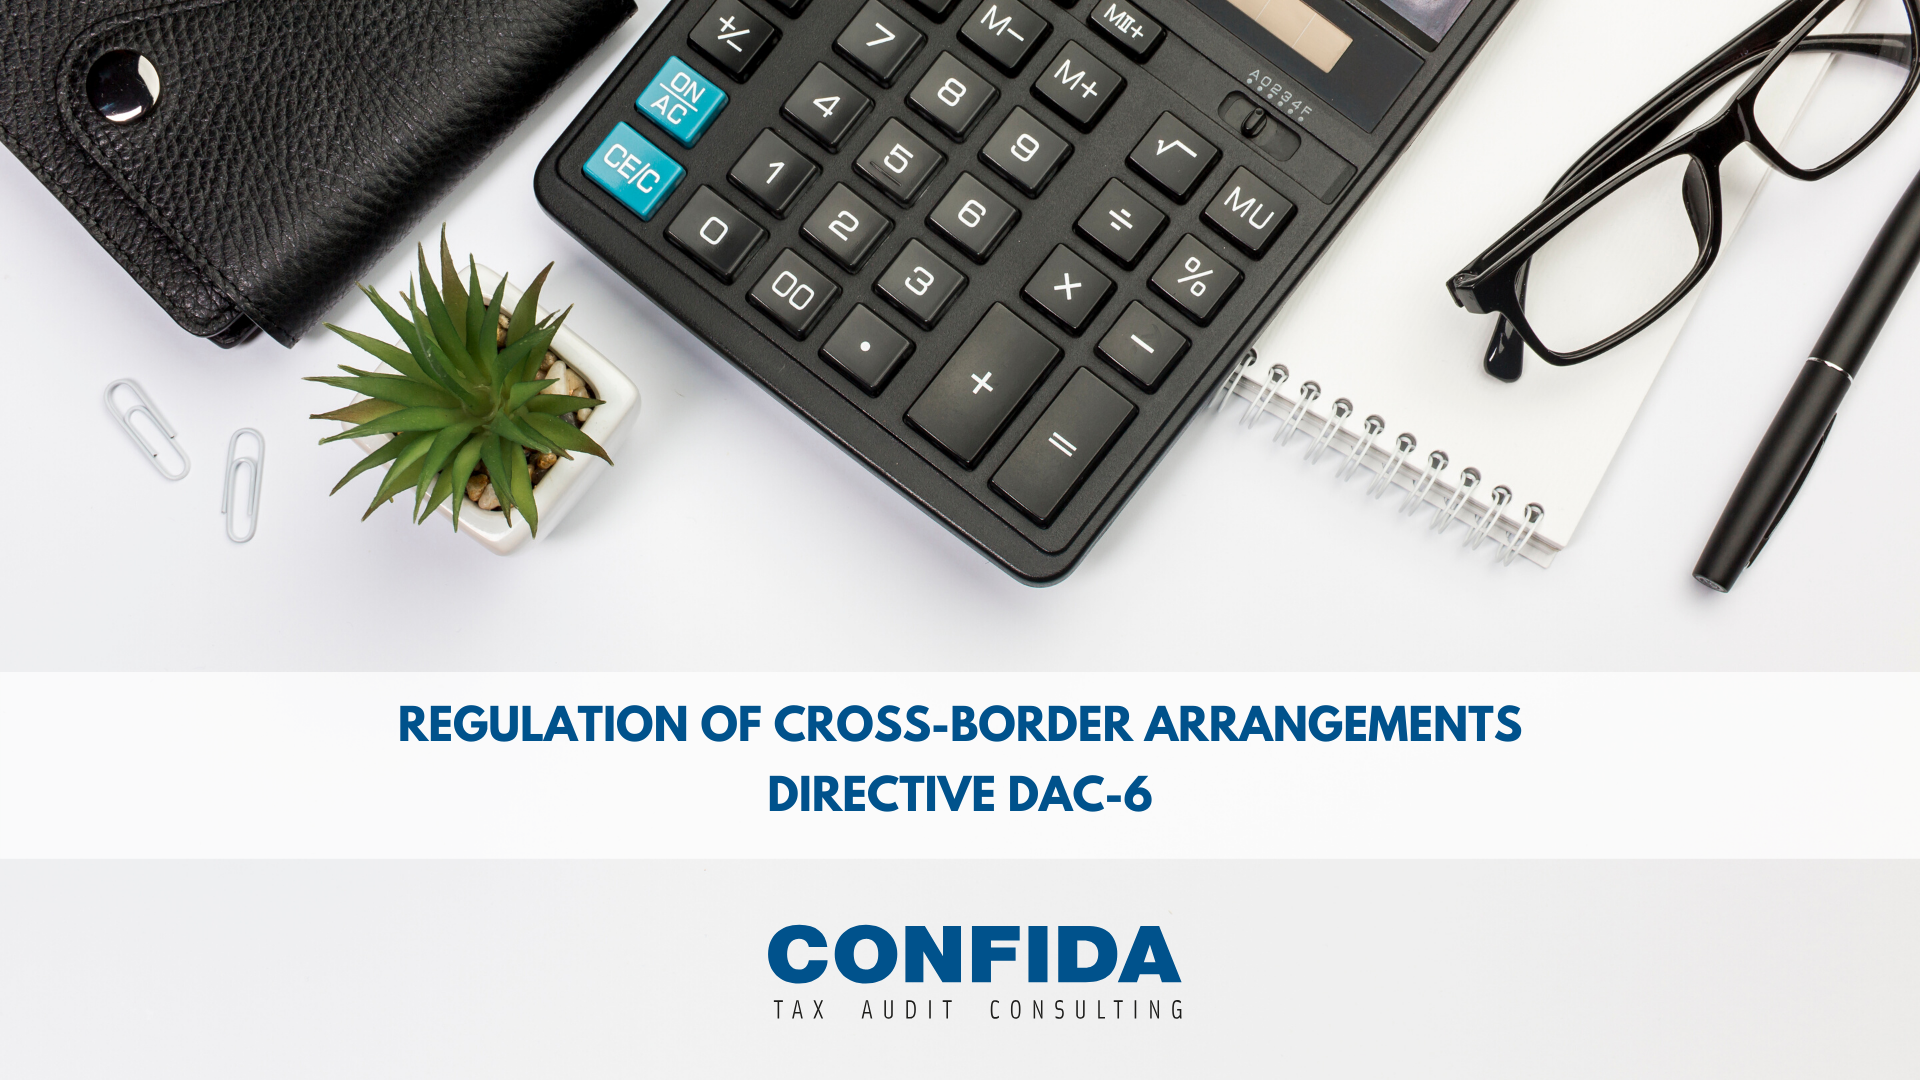 Regulation of cross-border arrangements – Directive DAC-6